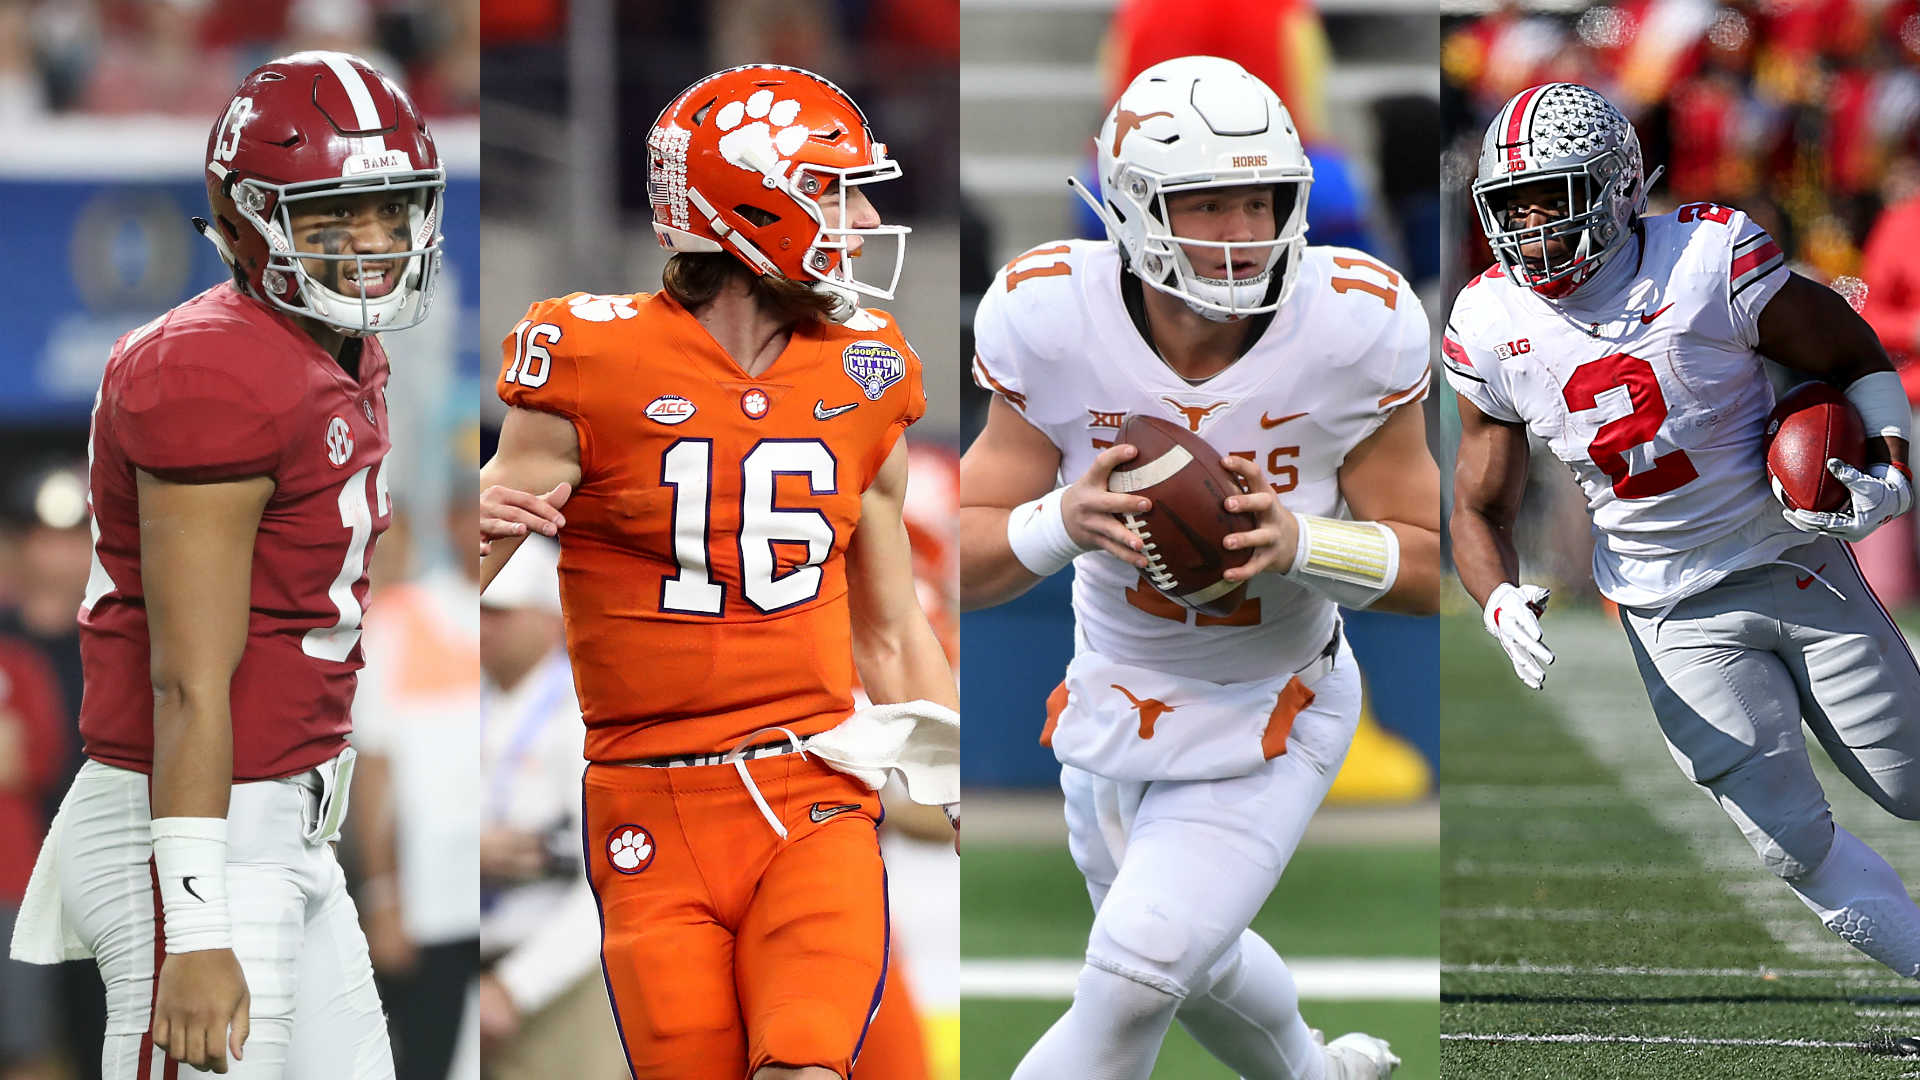 College football predictions for every 2019 bowl game, Playoff semifinals, national championship